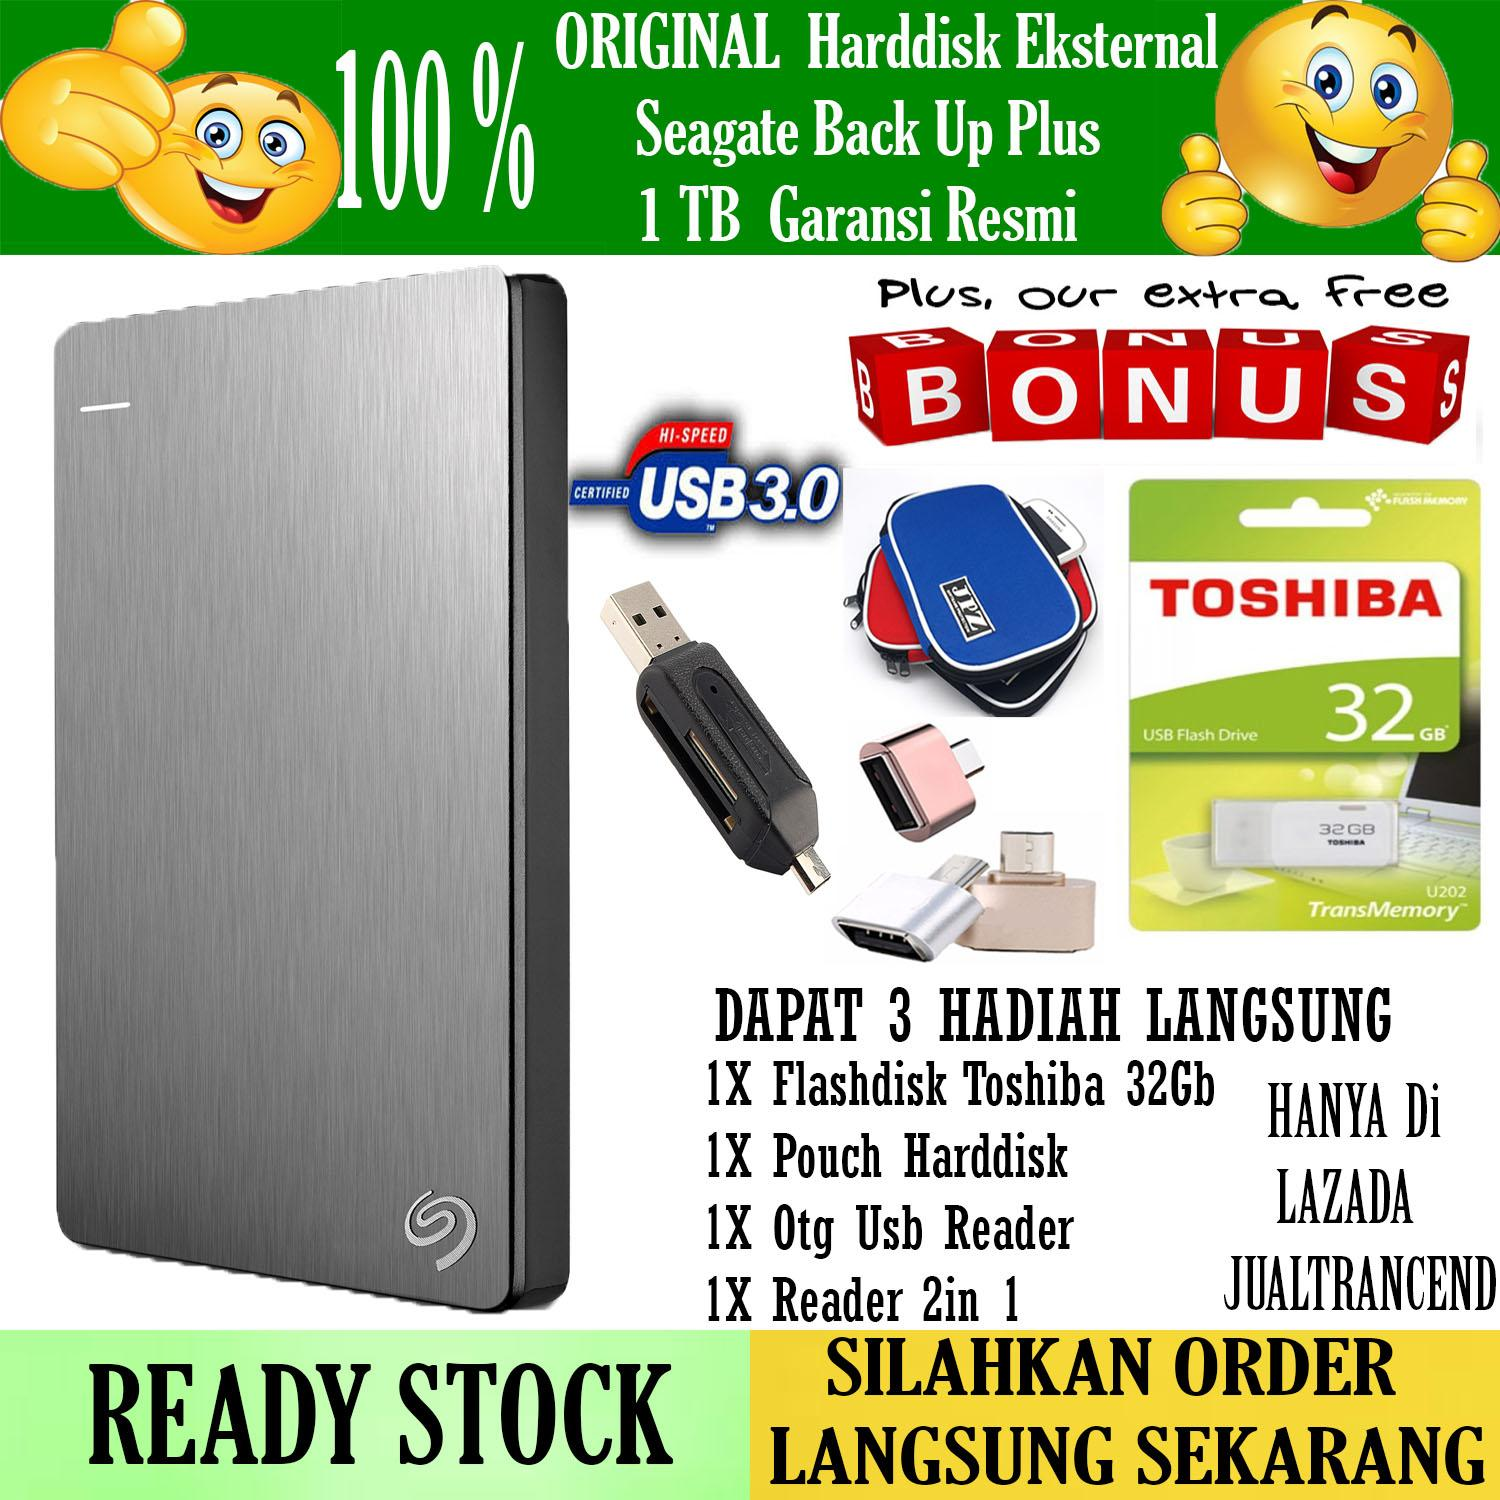 Seagate Backup Plus Slim 1TB - HDD - HD - Hardisk External 2.5 - Silver + Gratis  Flashdisk Toshiba 32Gb  + Pouch Harddisk + Reader 2In 1 + Usb Otg